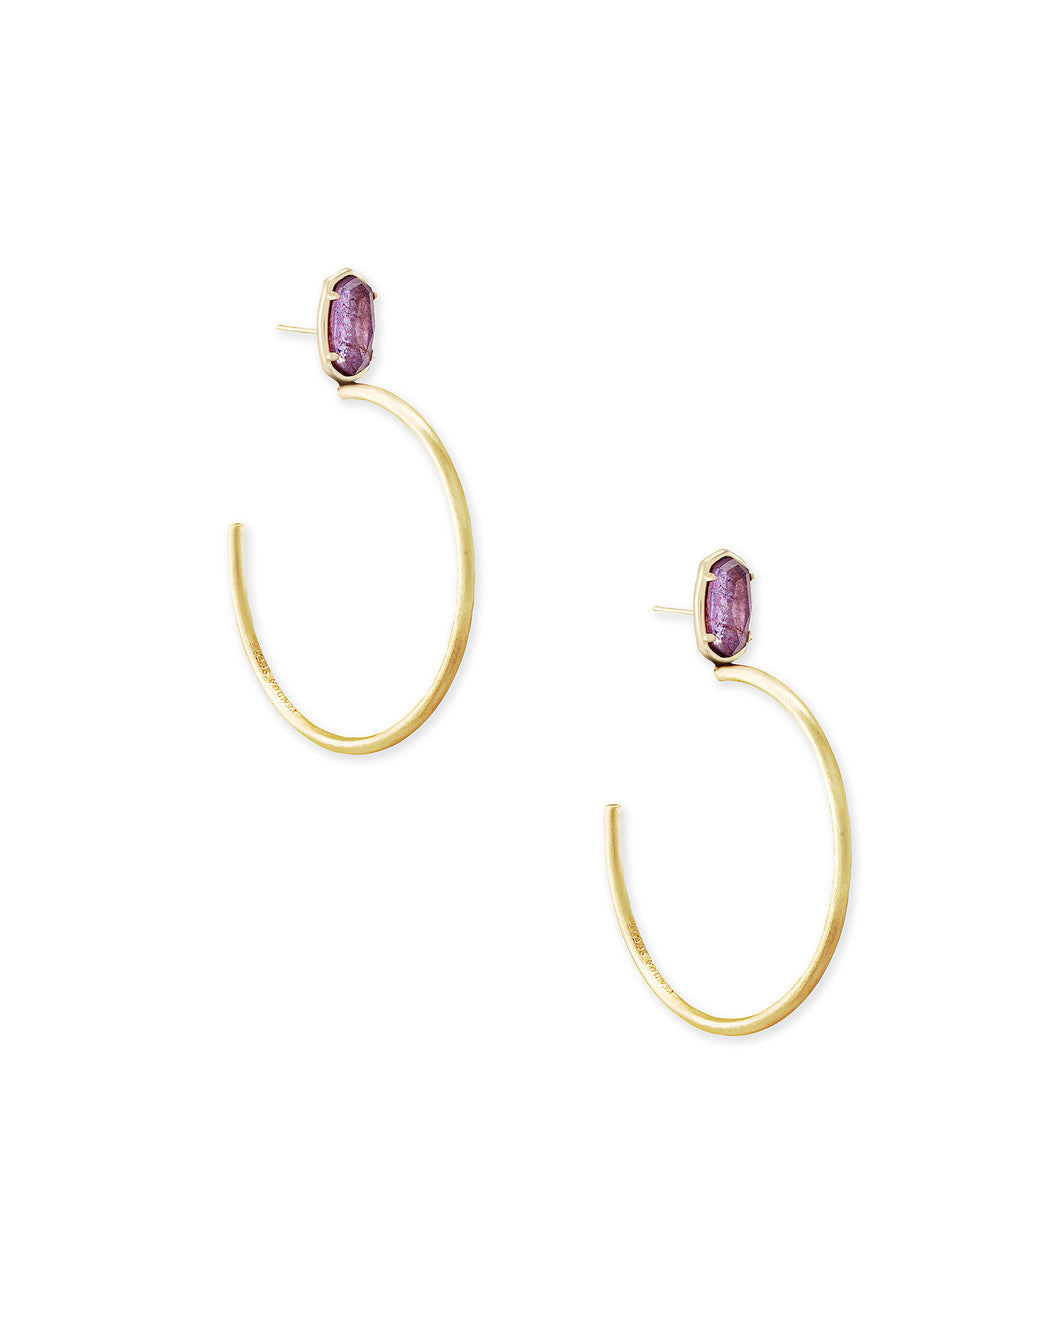 Small Pepper Gold Hoop Earrings in Purple Mica